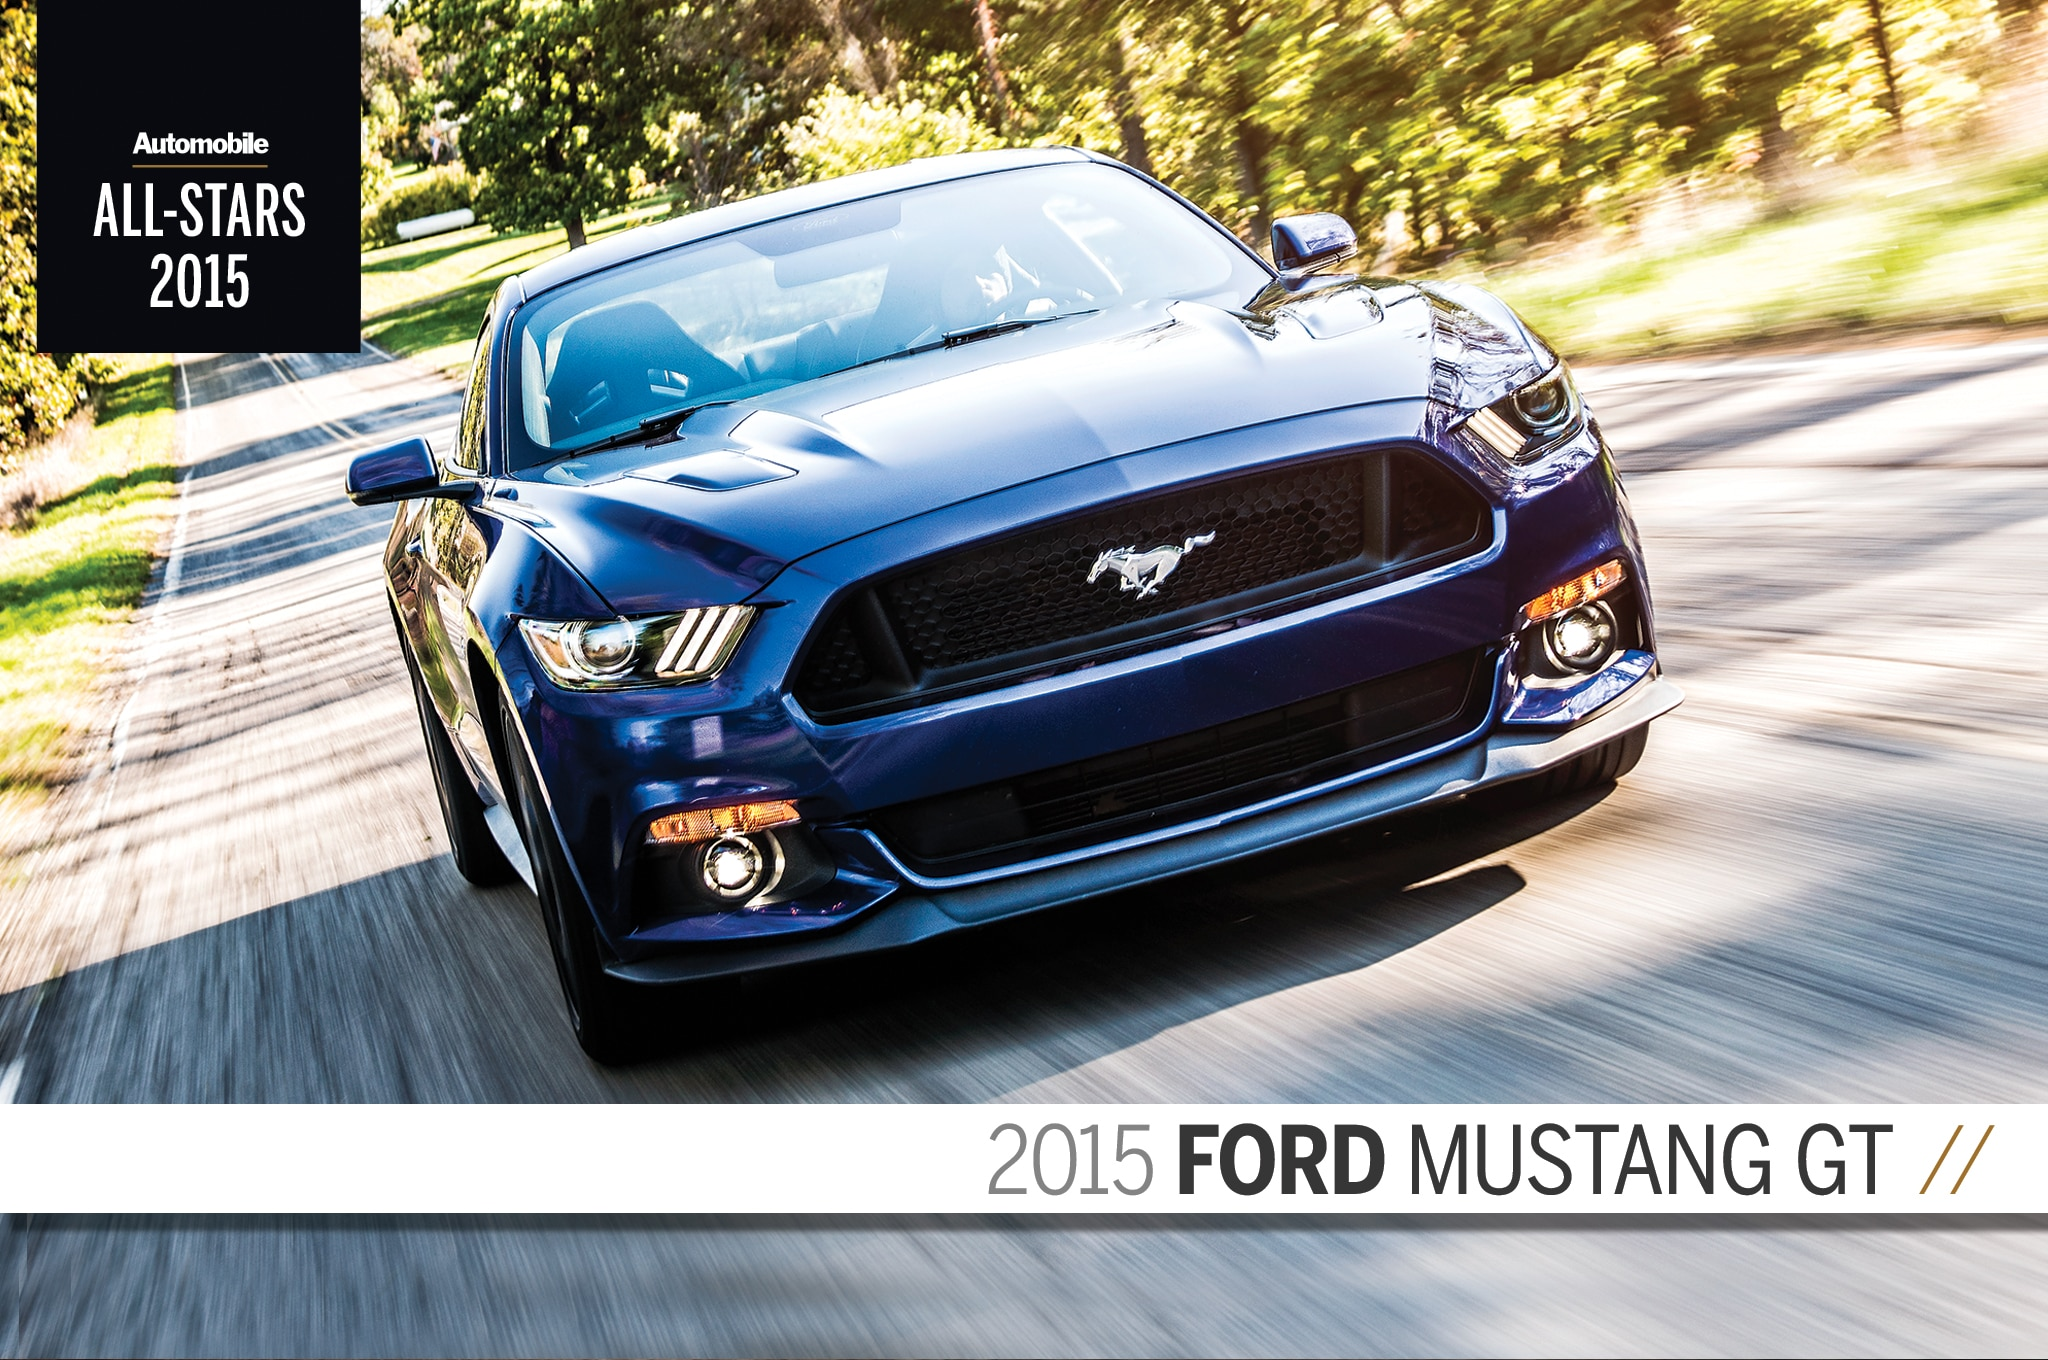 All Stars 2015 Ford Mustang GT Final